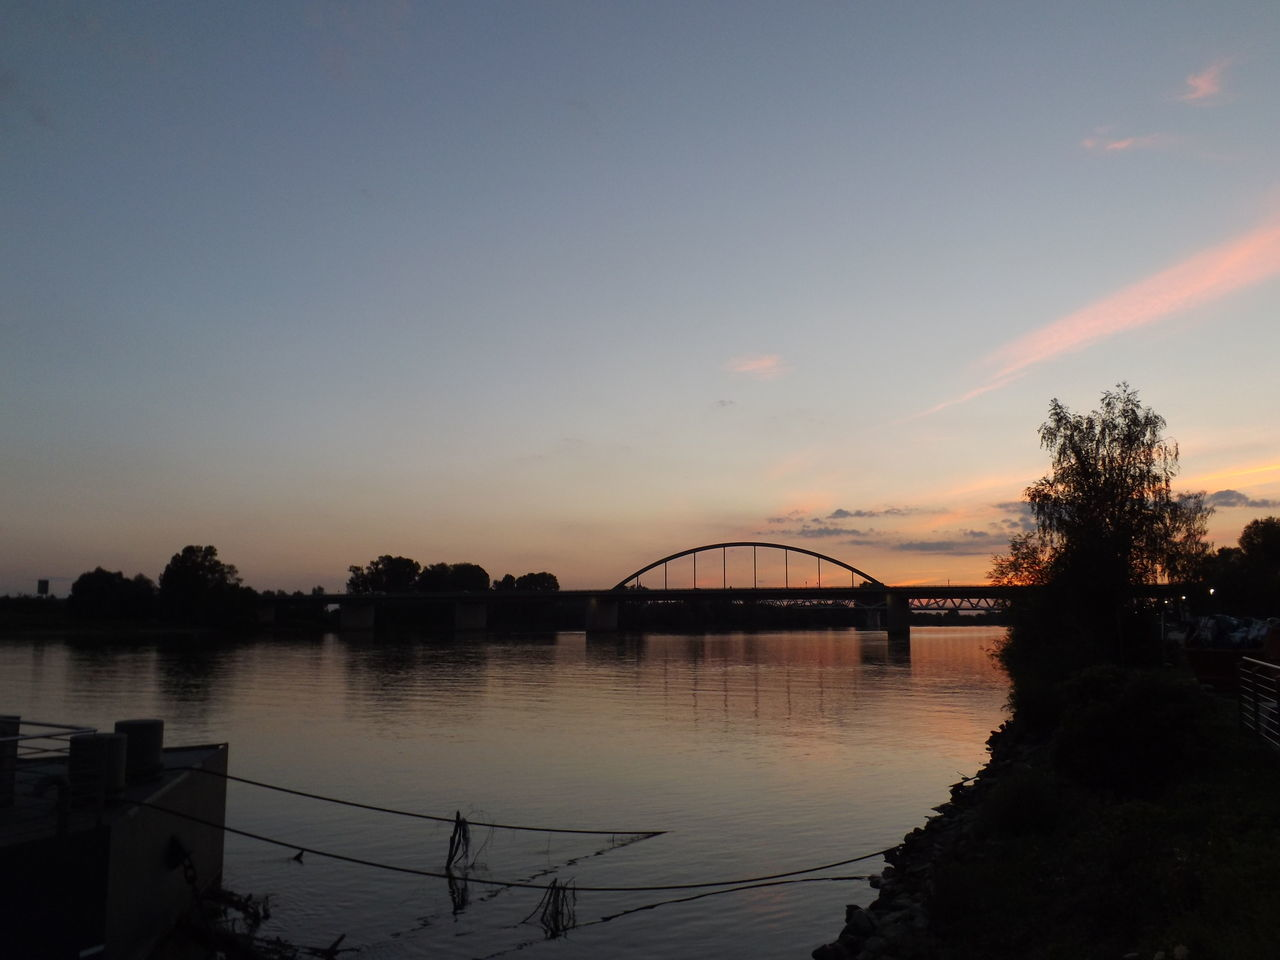 River River View No People Sunset Evening Sky Summer Nature Bridge Water Outdoors Water_collection Donau Beauty In Nature